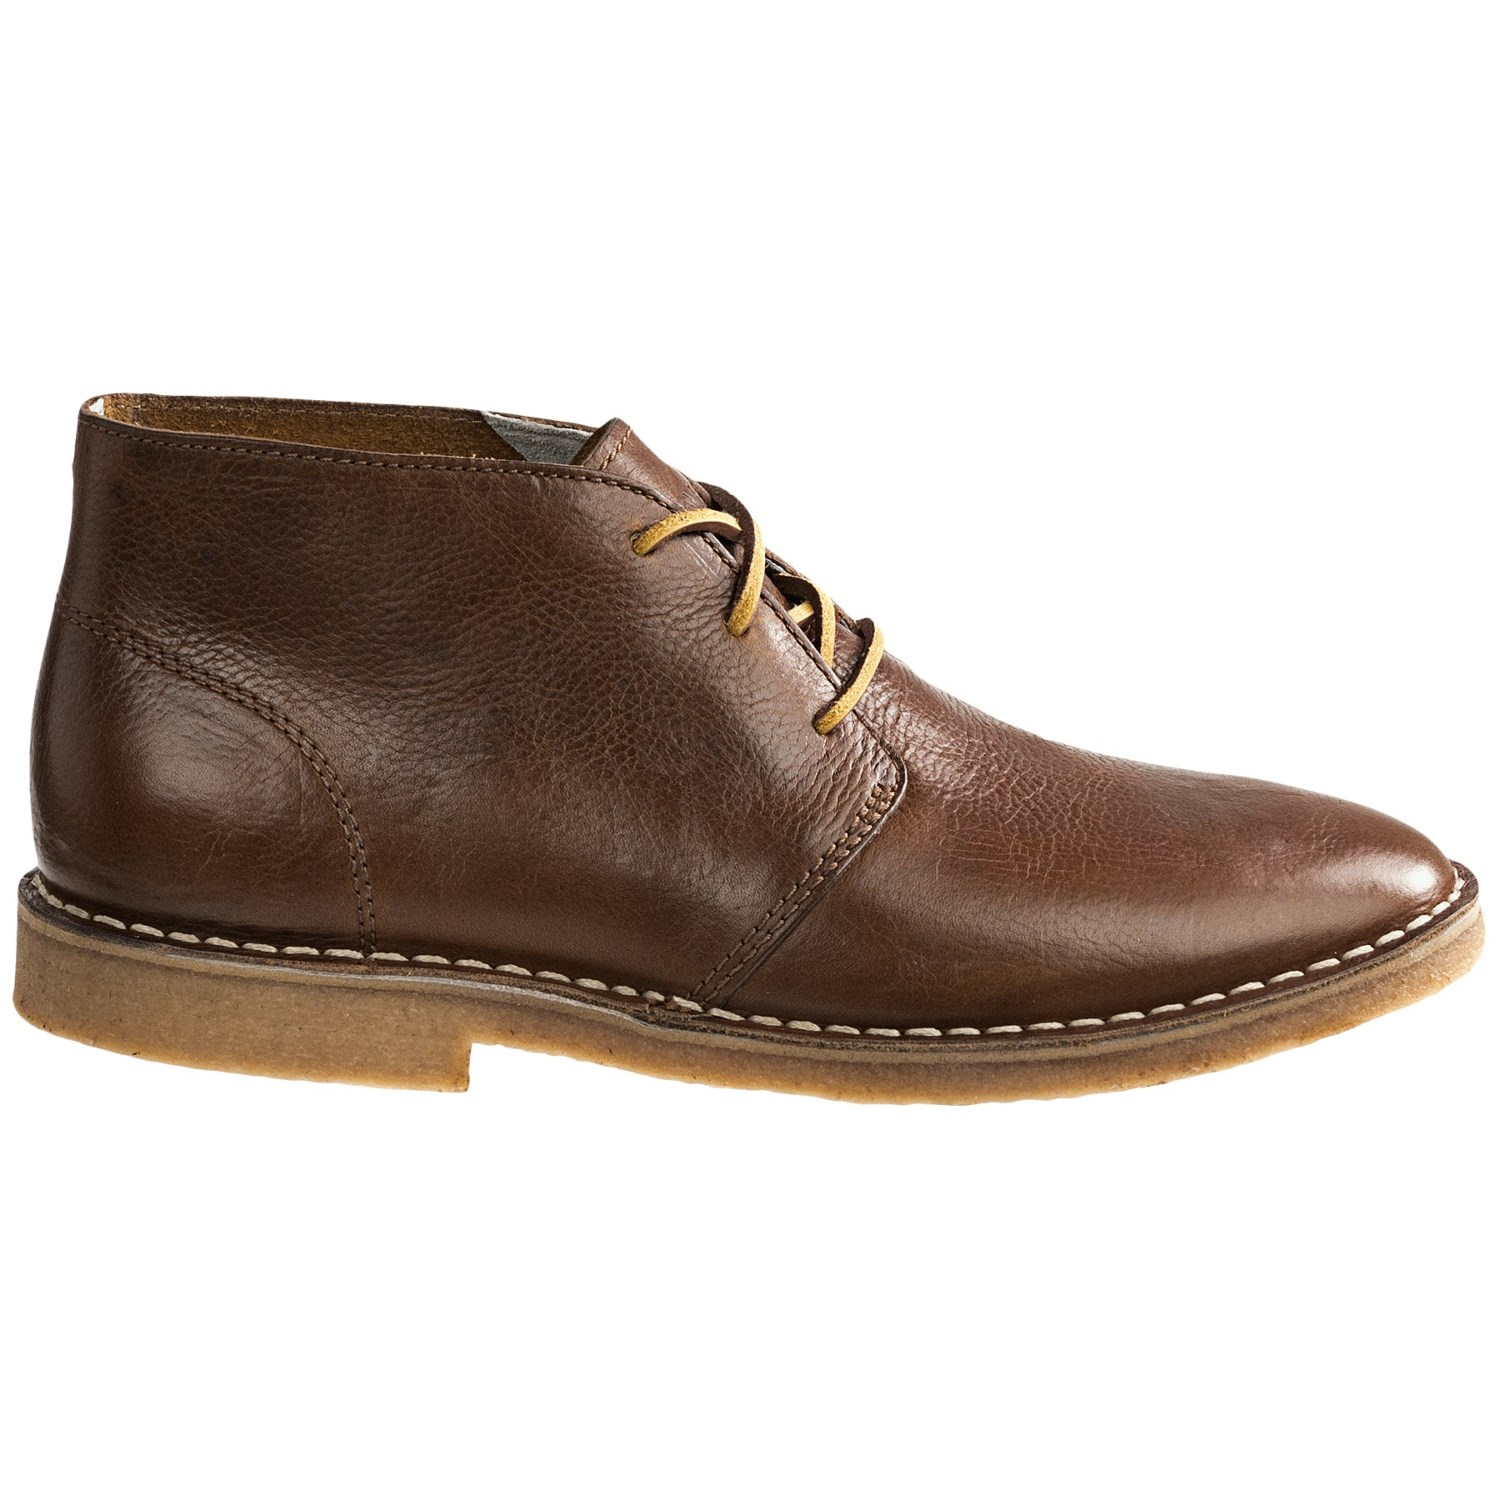 seavees 12 67 3 eye chukka boots for 6539u save 73